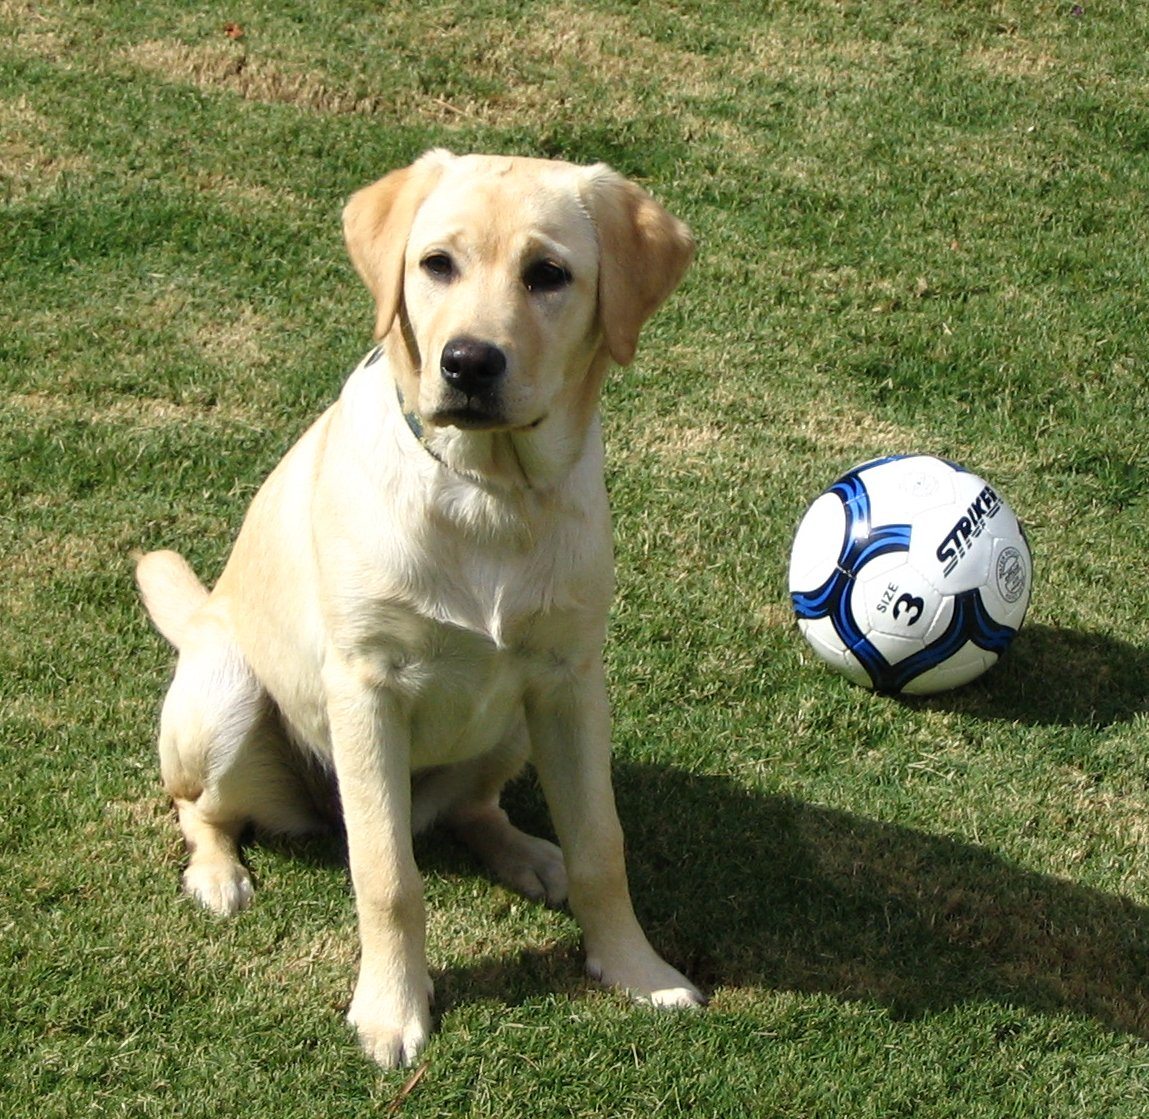 Labrador Retriever - Simple English Wikipedia, the free ...